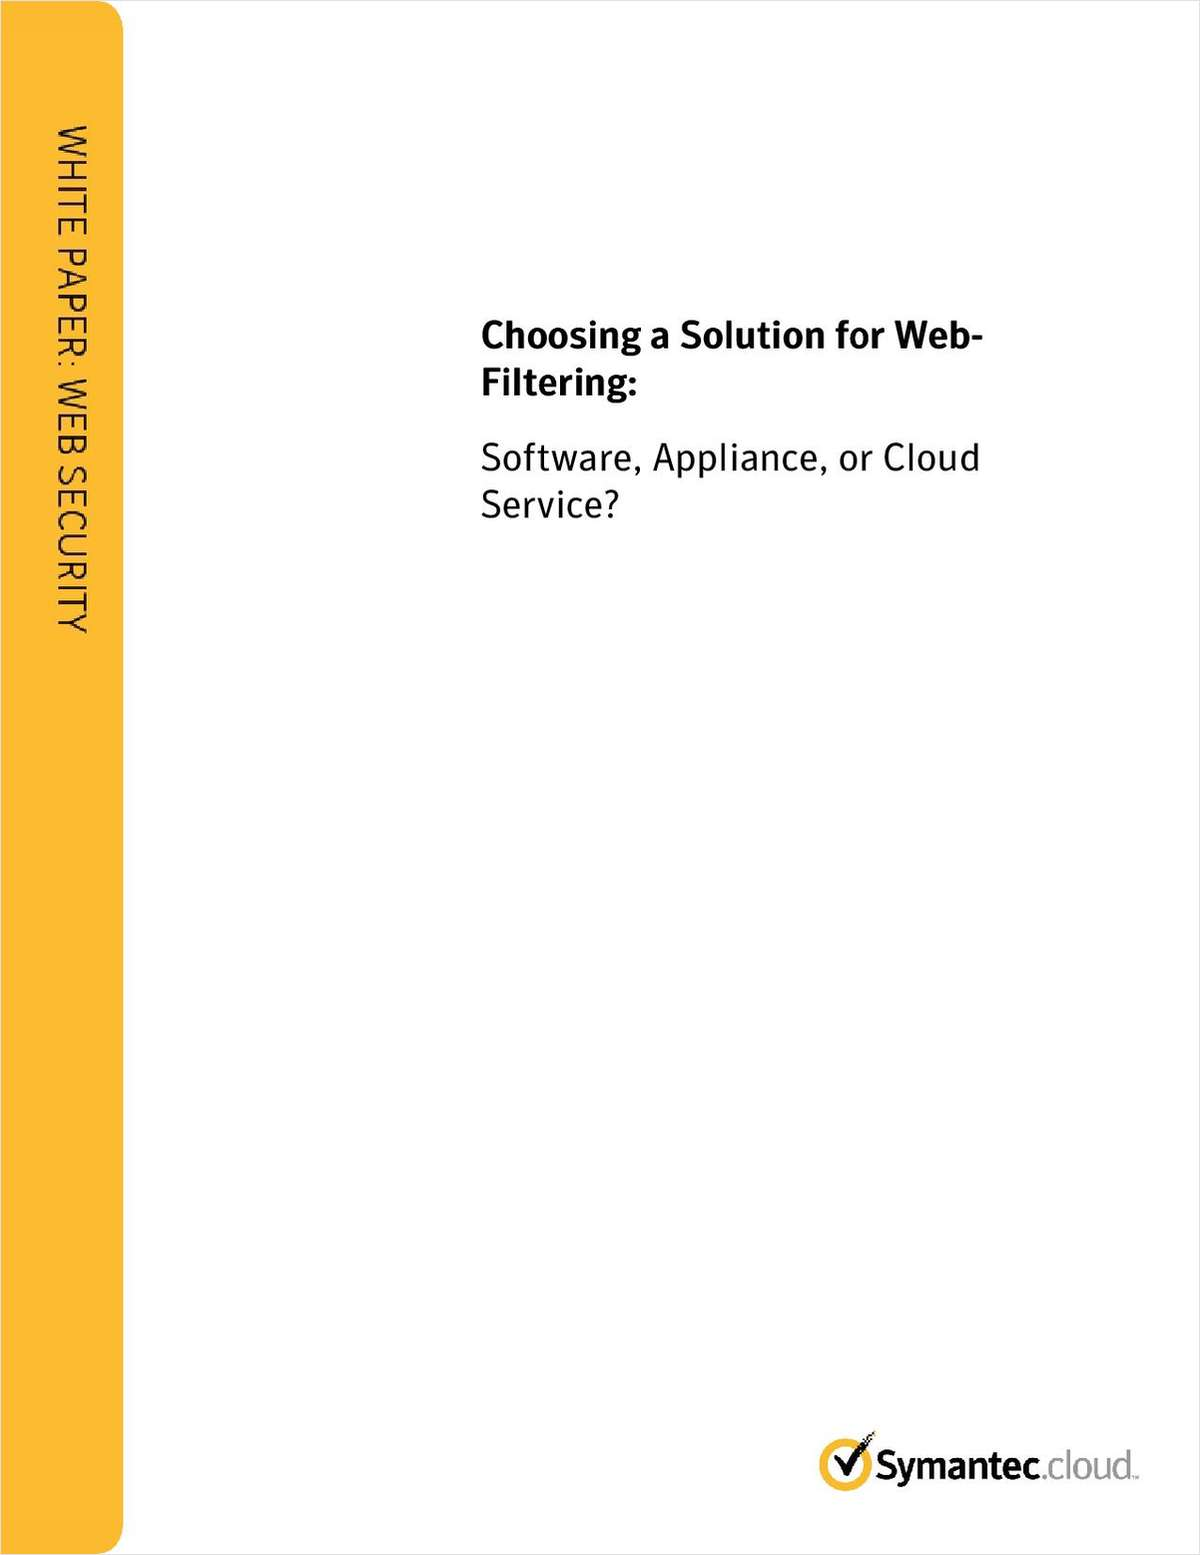 Choosing a Solution for Web-Filtering: Software, Appliance, or Cloud Service?